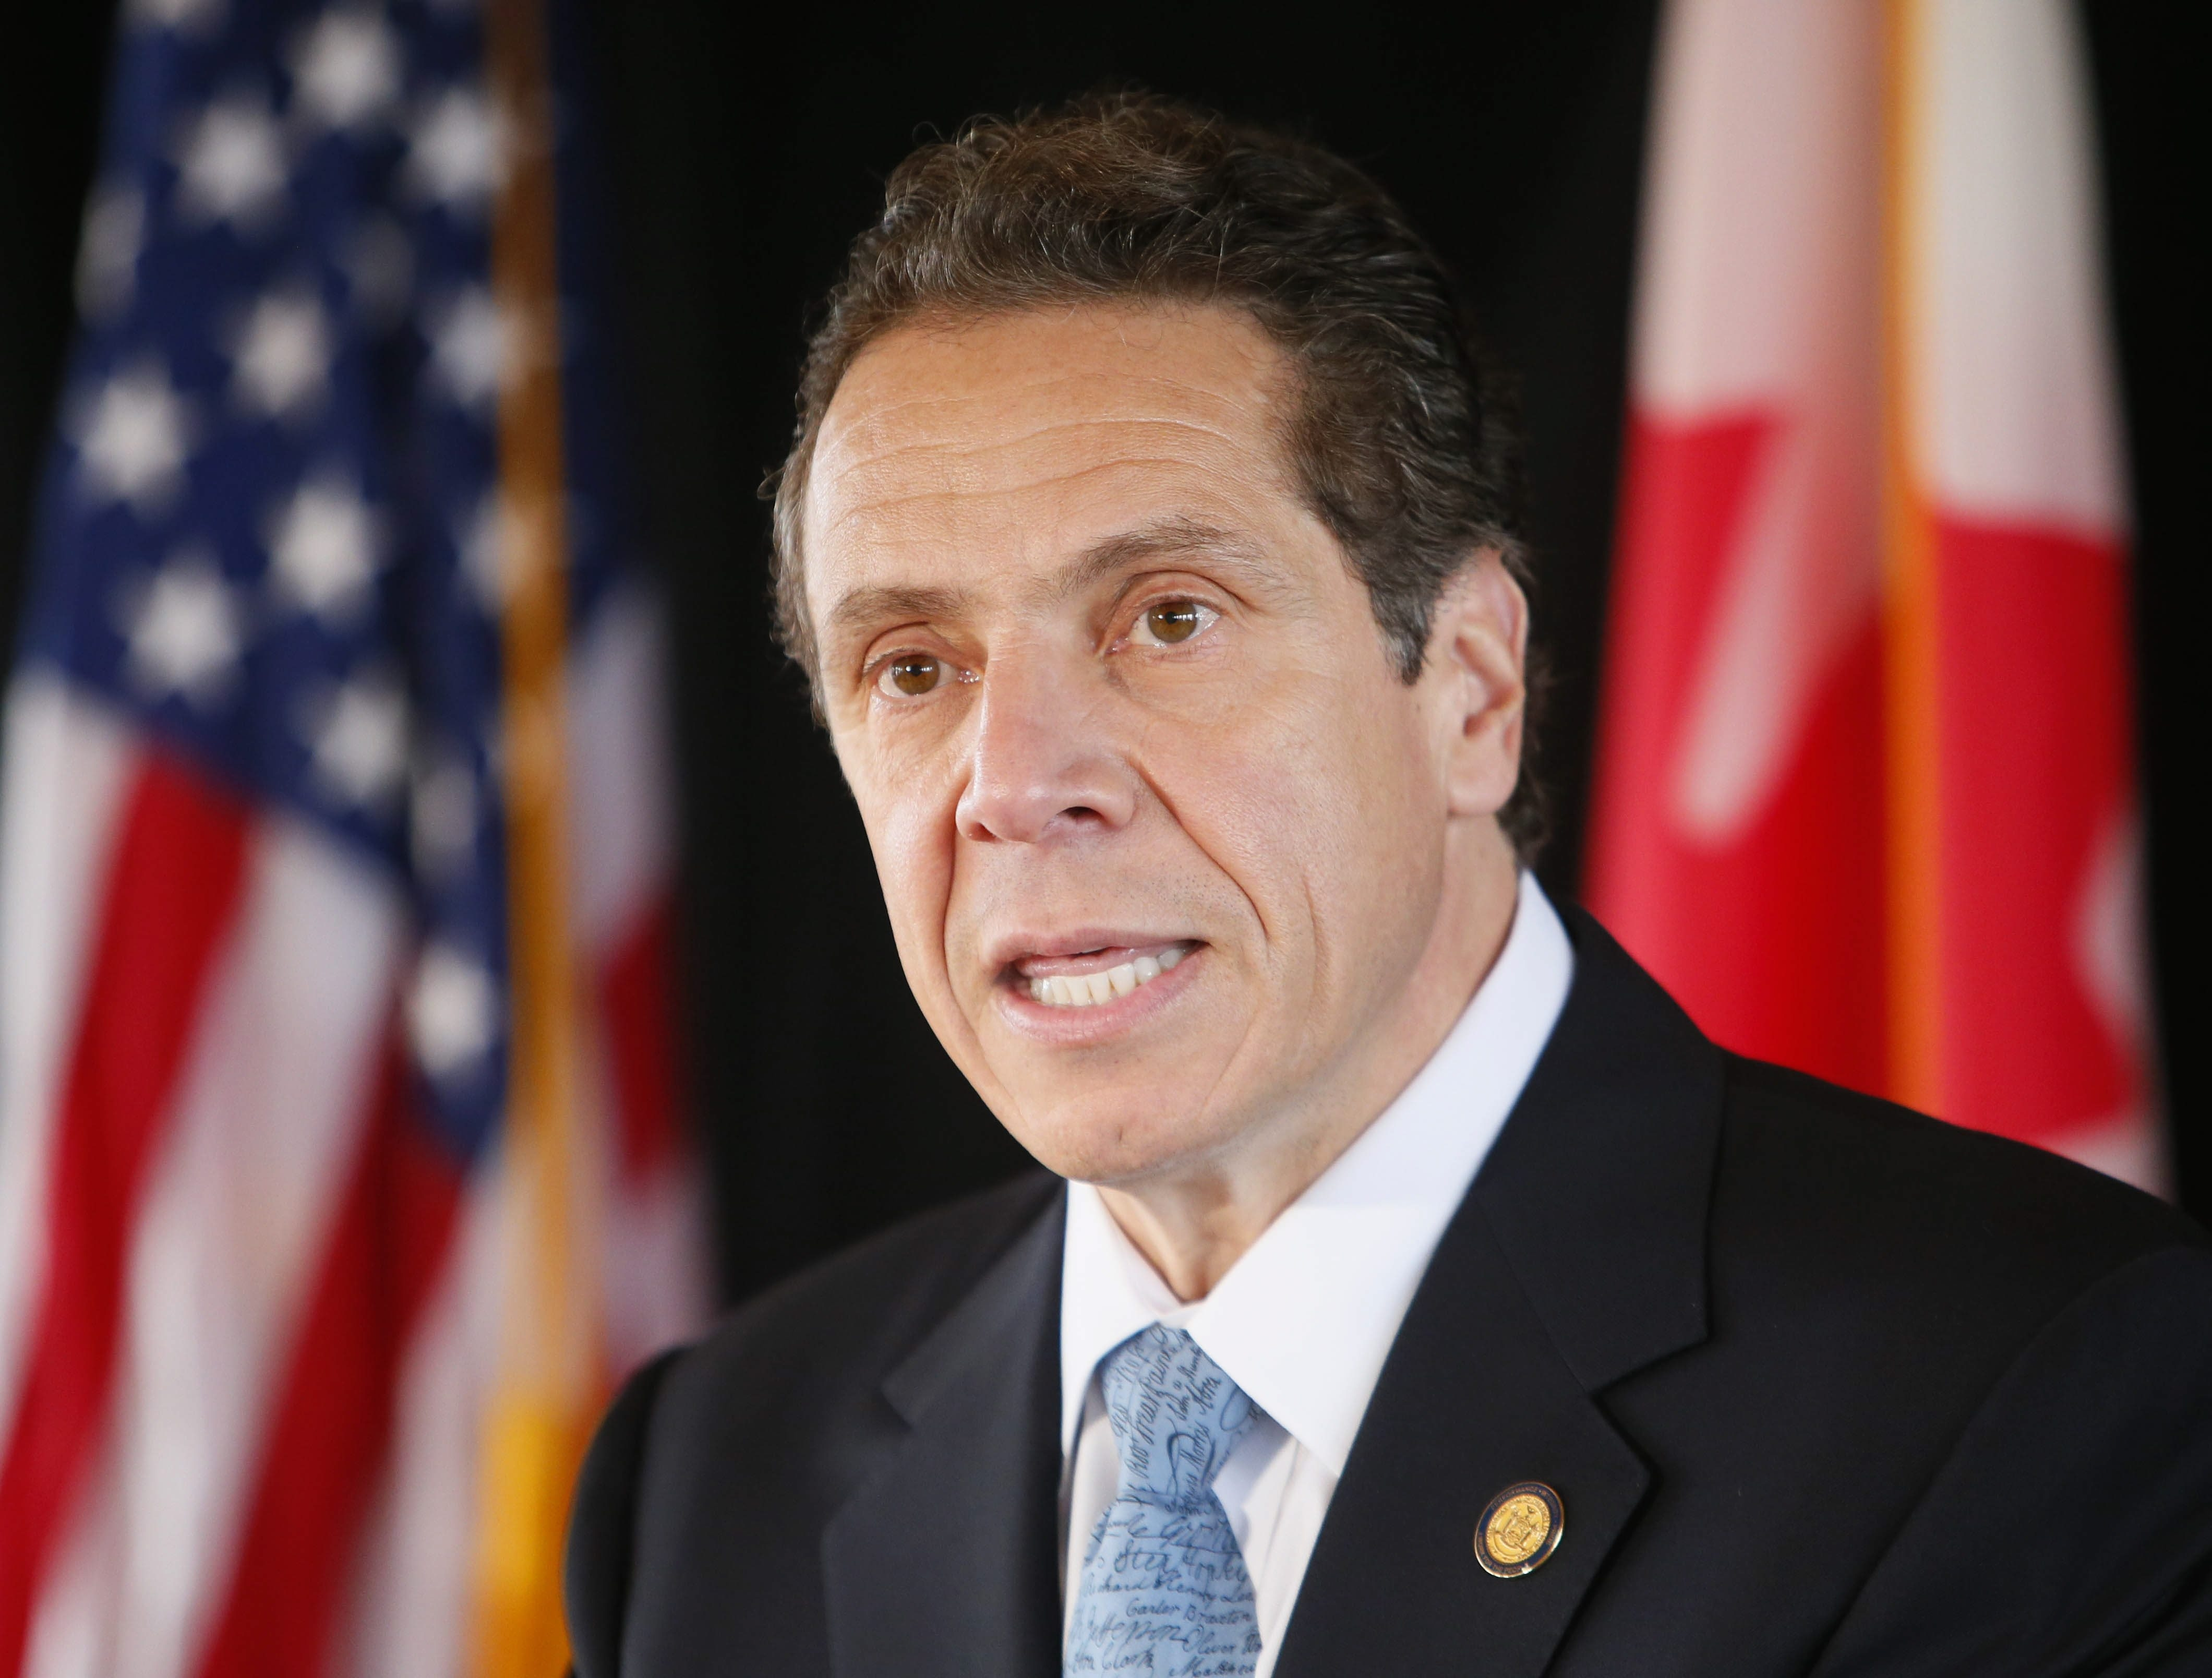 Gov. Andrew M. Cuomo will be hitting up deep-pocket donors at a Buffalo fundraiser later this month.